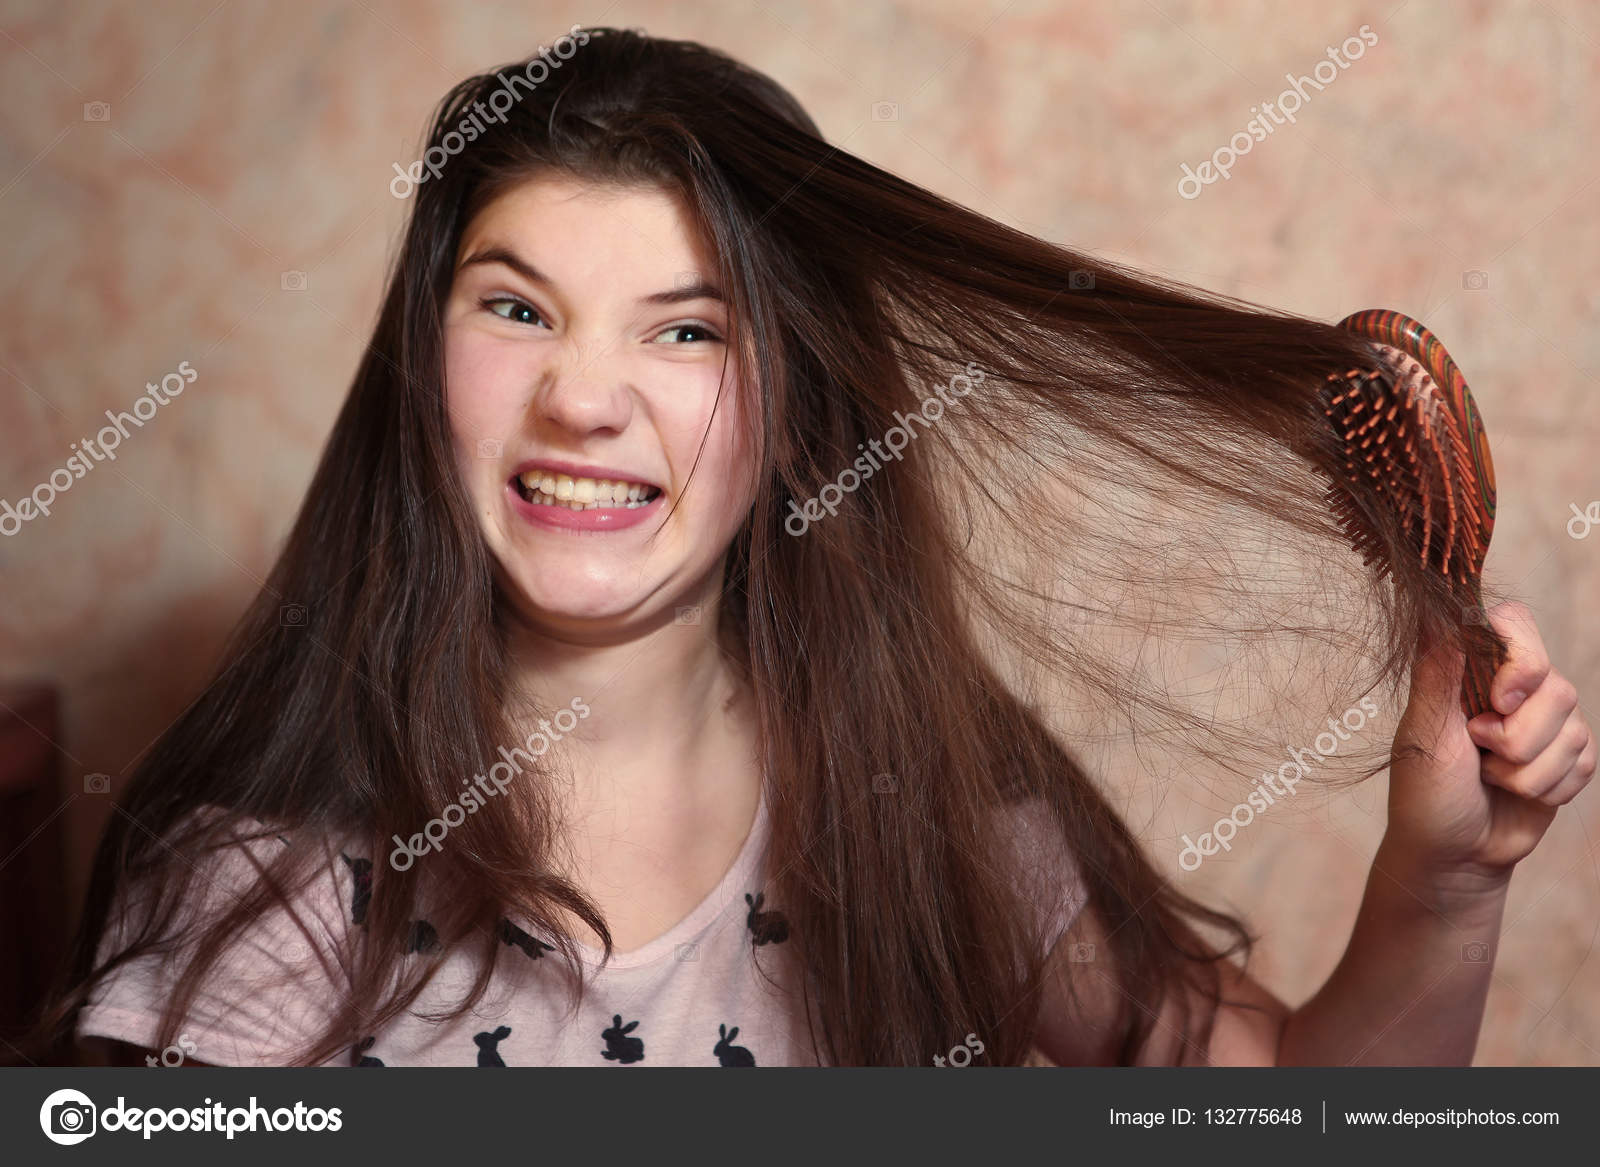 Beautiful Teen Girl Try Comb Her Long Dark Thick Hair Photo By Ulianna